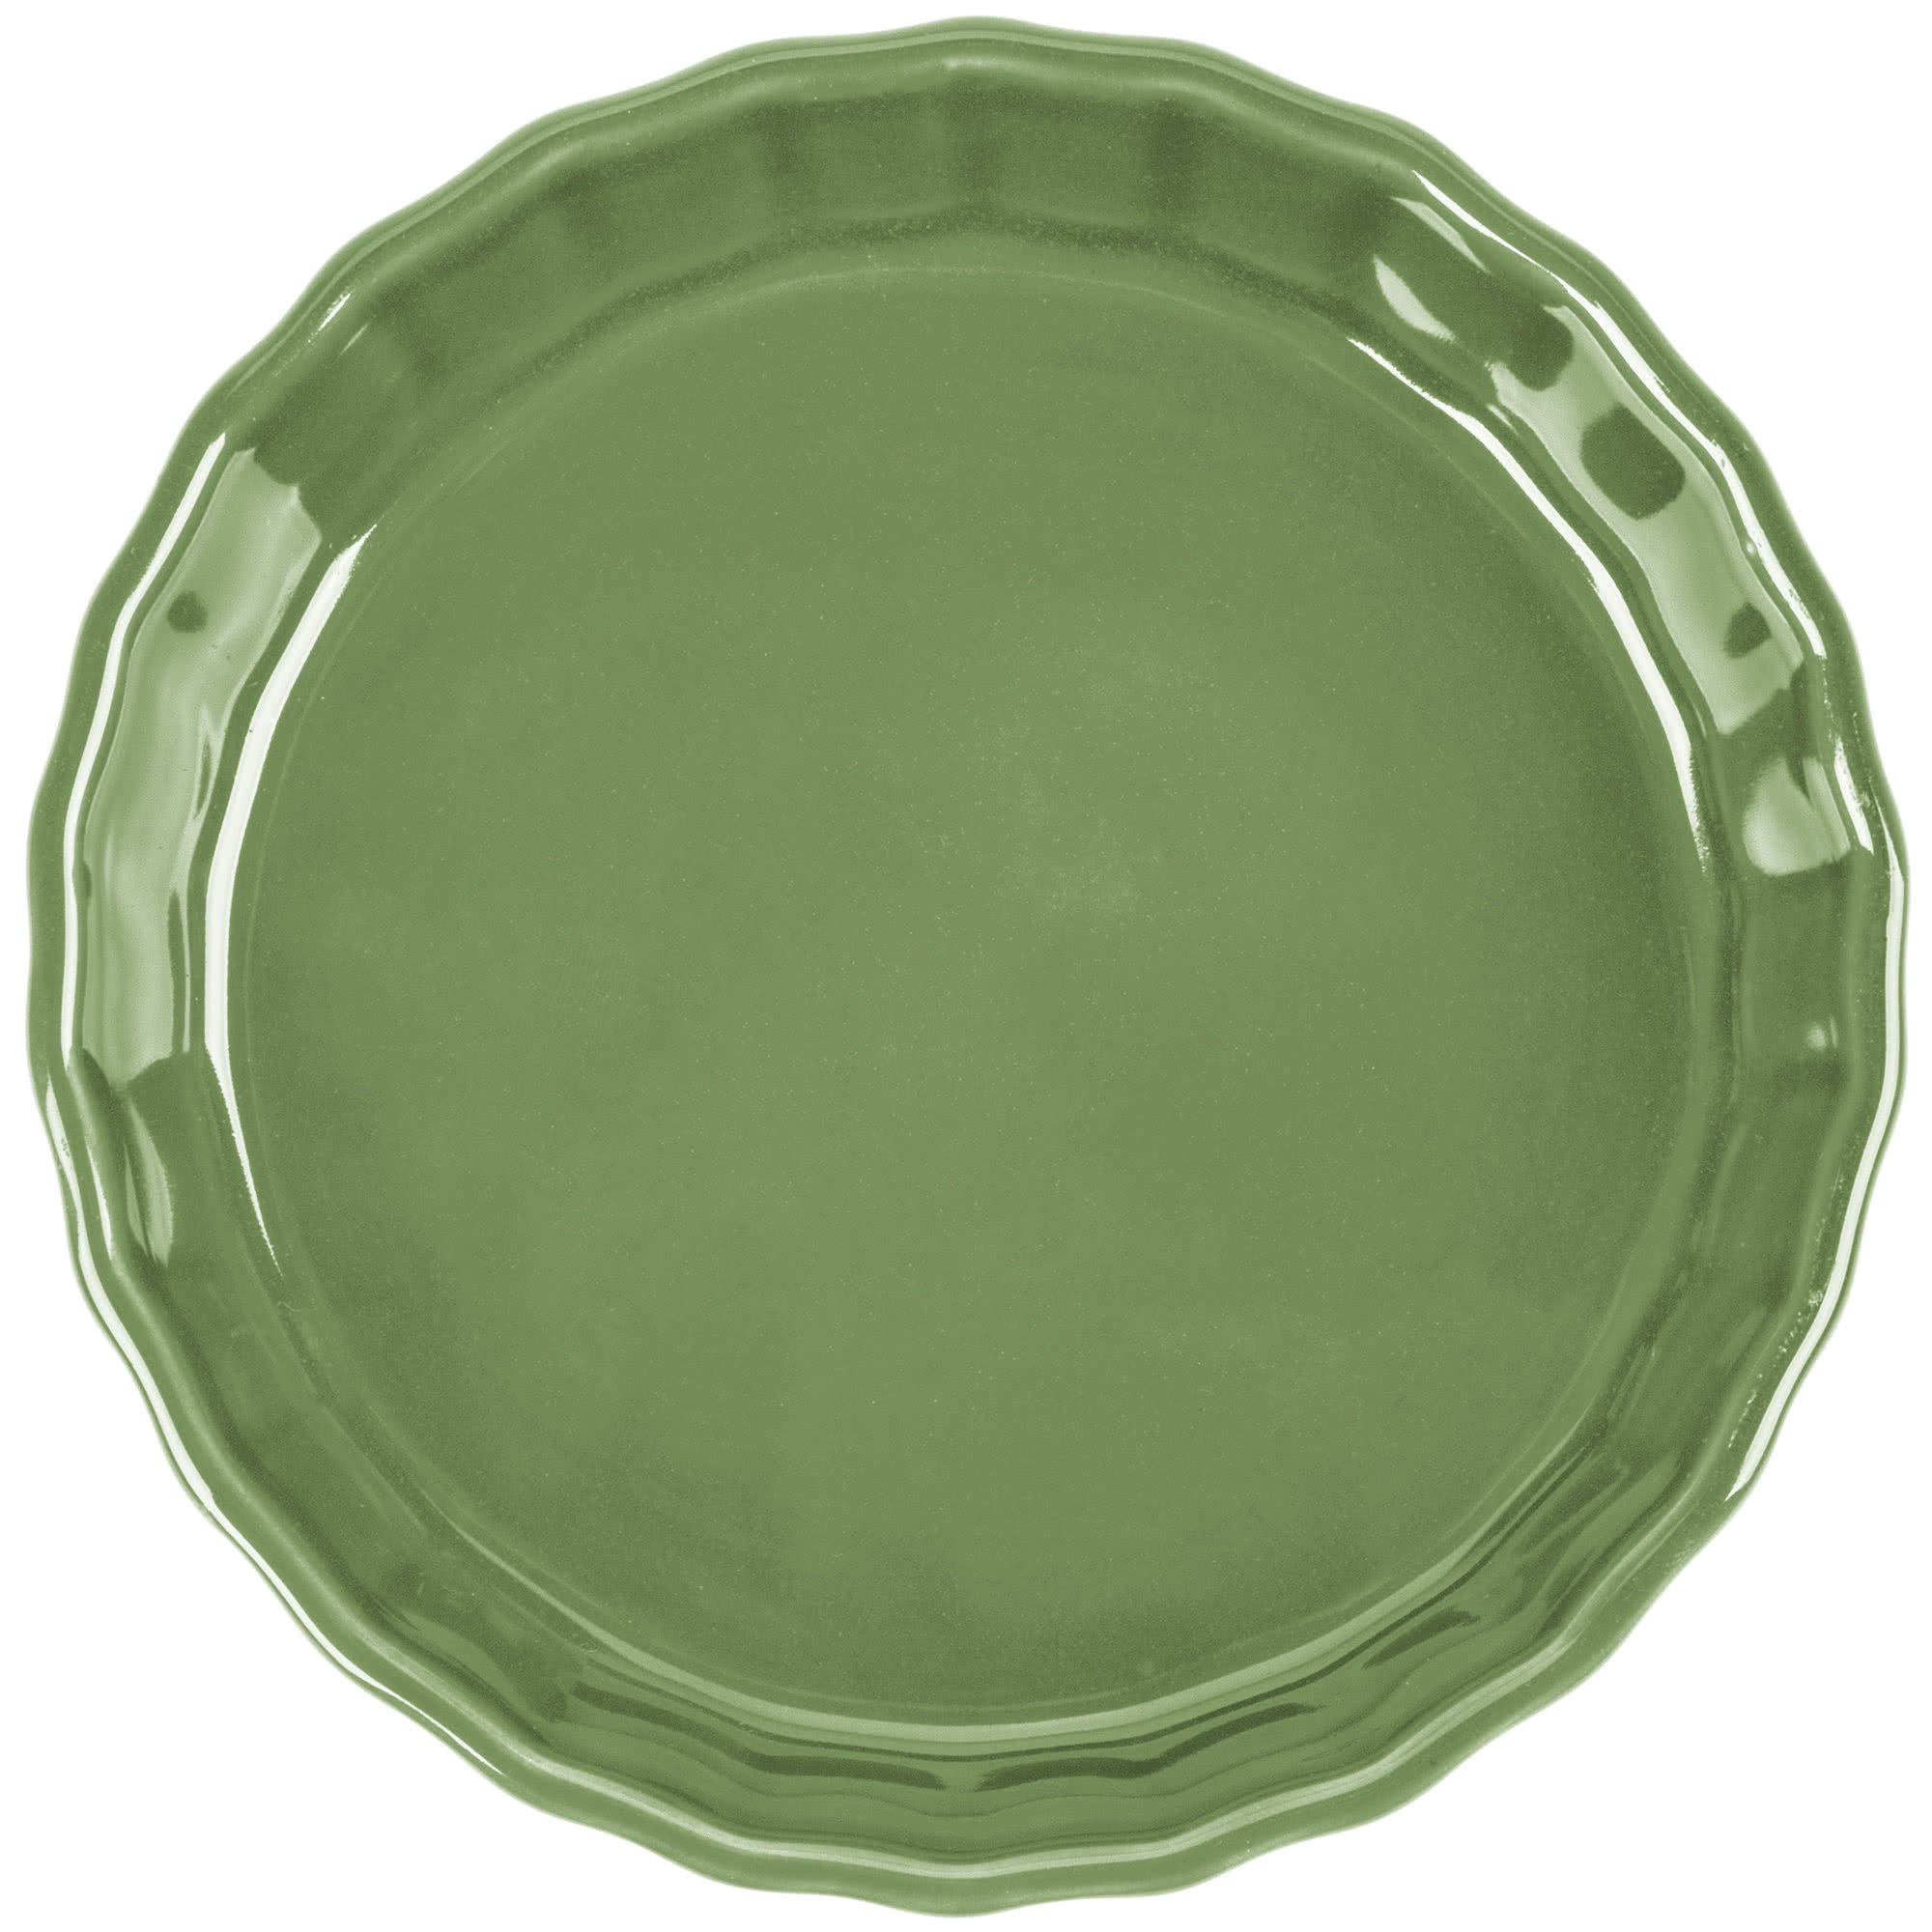 TableTop King QCD-5GRE Festiware Fluted Quiche Dish 5.5 oz. - Green - 24/Case by TableTop King (Image #2)